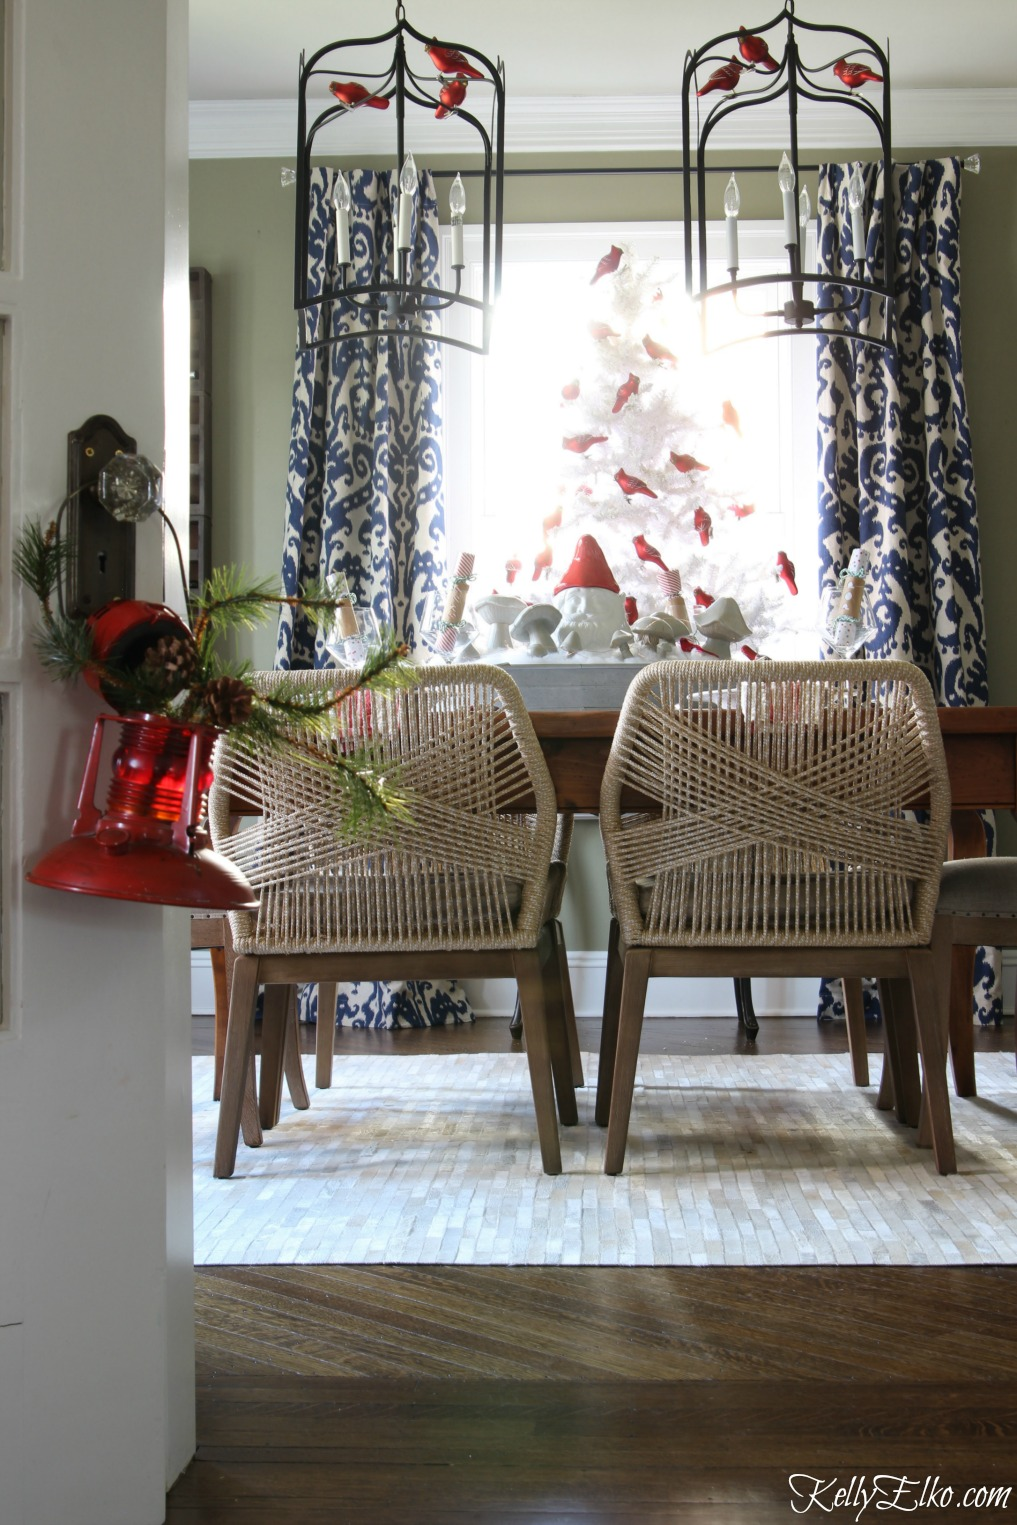 my cozy christmas home tour kelly elko love this festive christmas dining room with white flocked tree and those amazing rope chairs